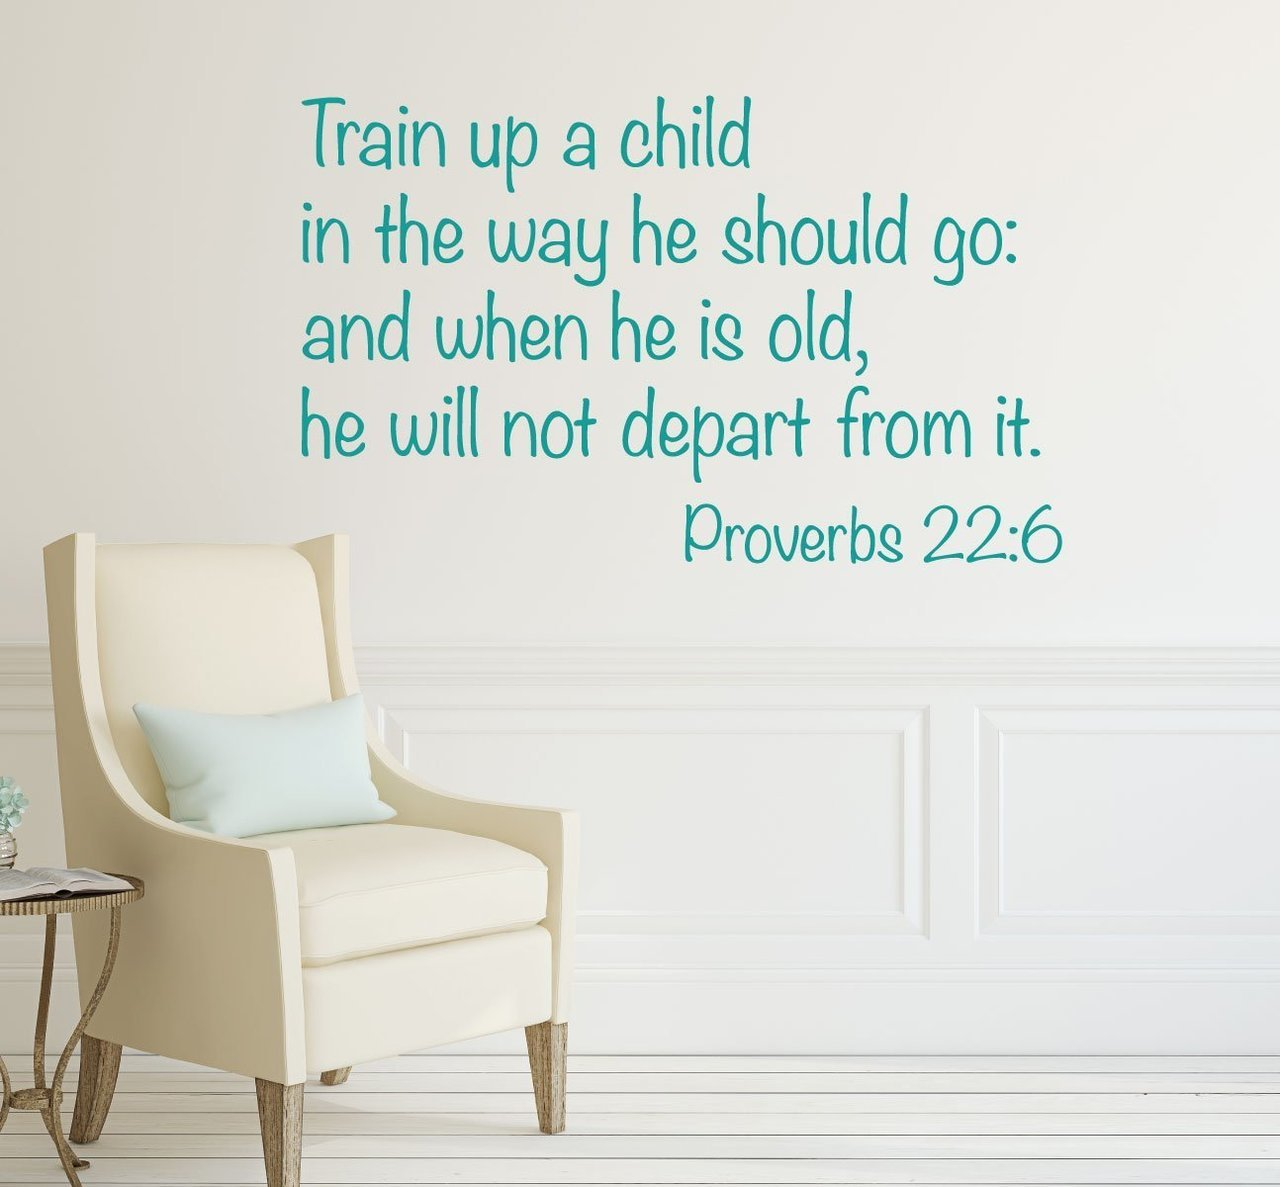 Bible Verse Wall Decals Proverbs 22 6 Train Up A Child